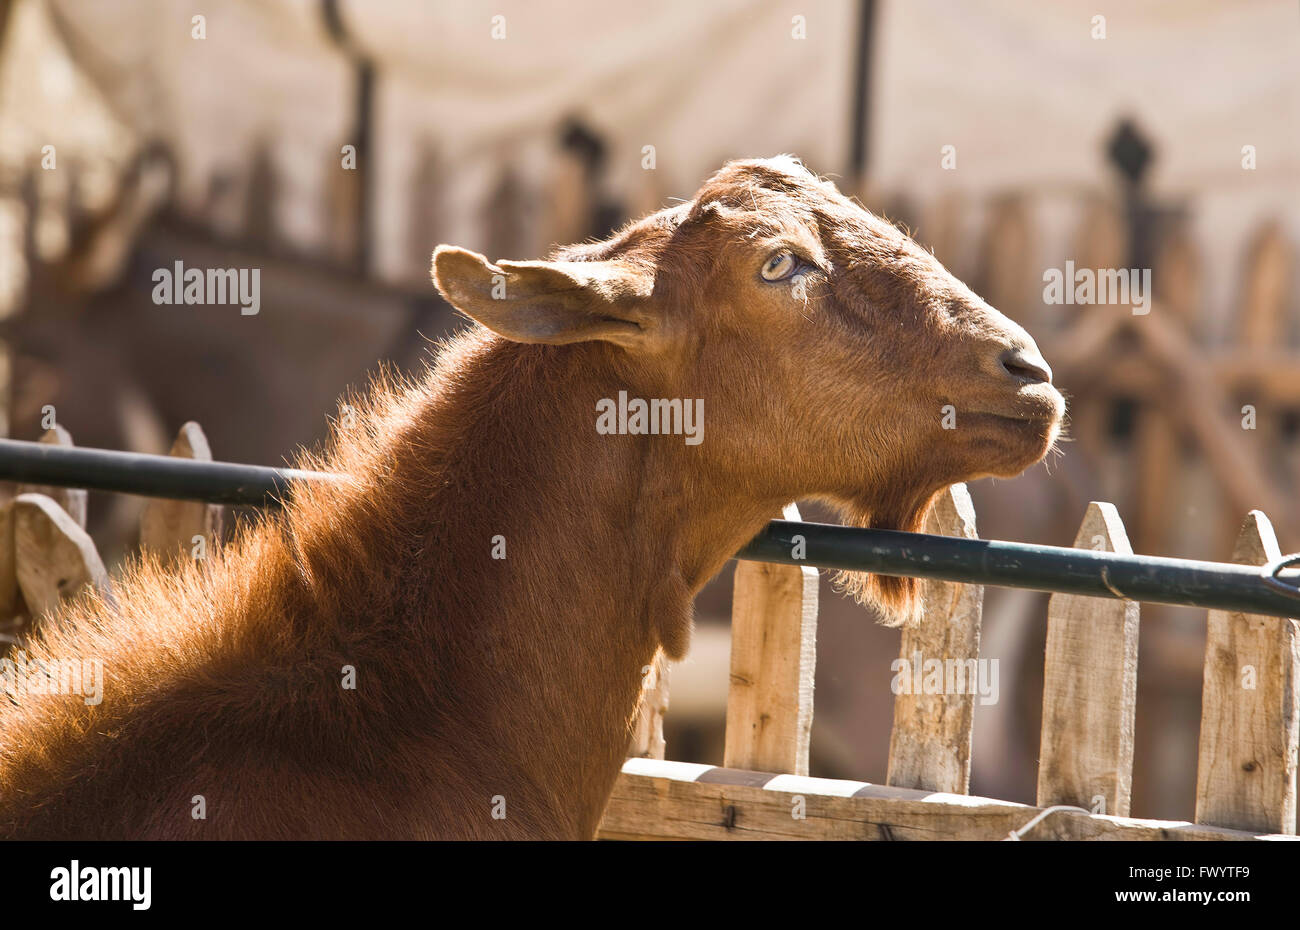 Funny goat peeking through a fence with an traquil  look - Stock Image